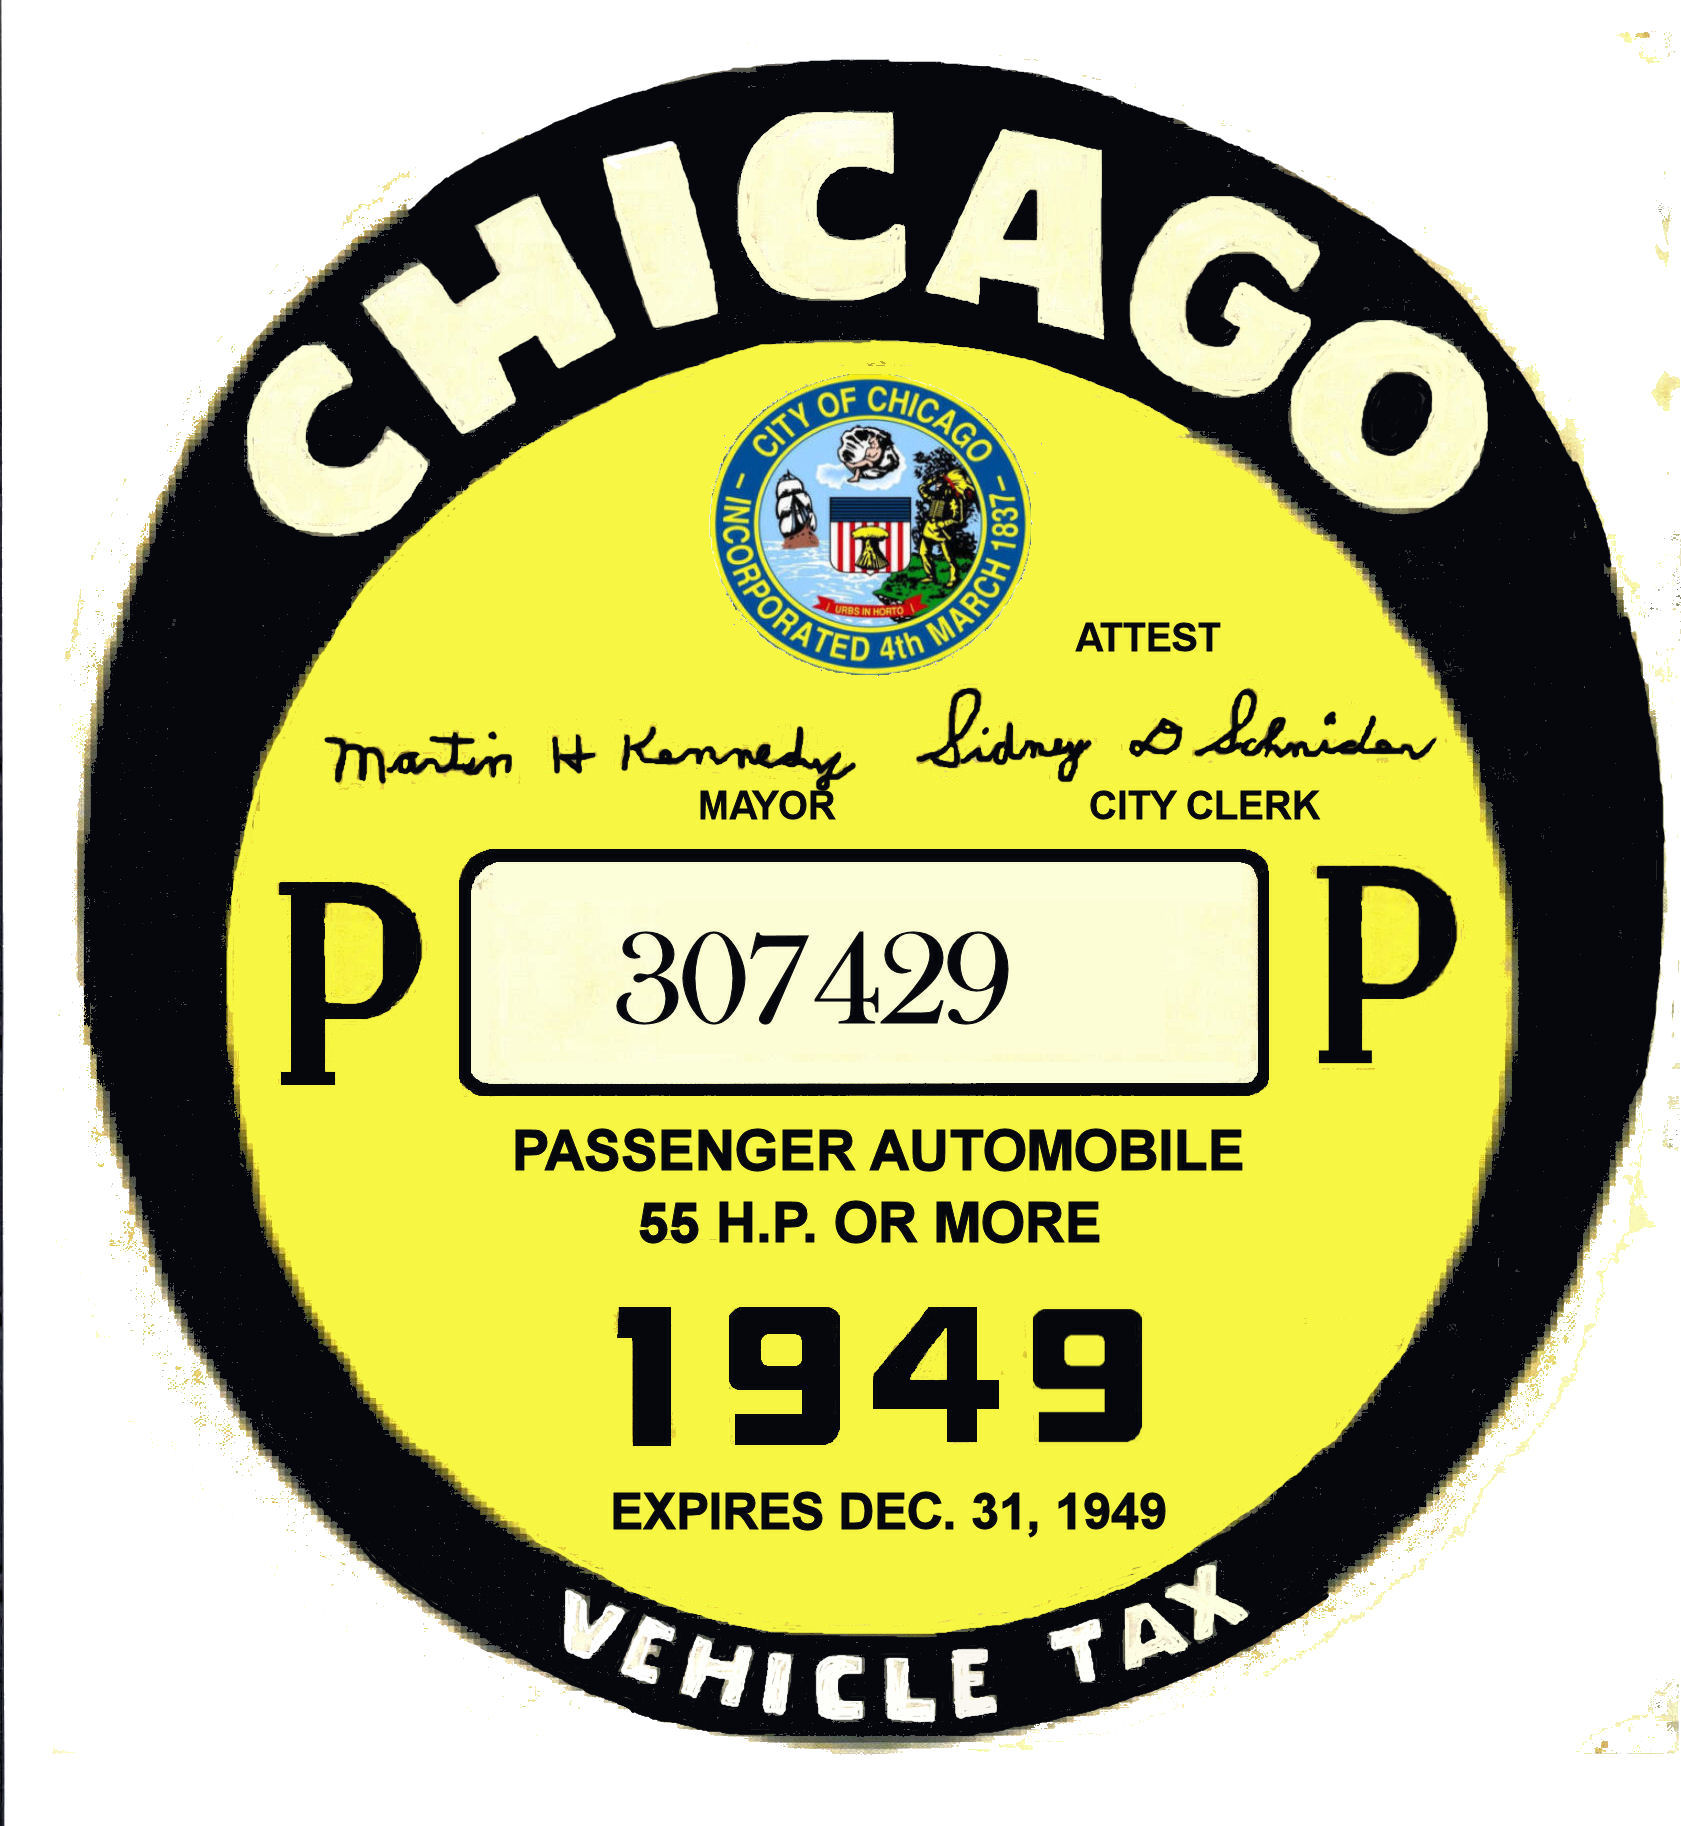 1949 Illinois tax inspection sticker CHICAGO